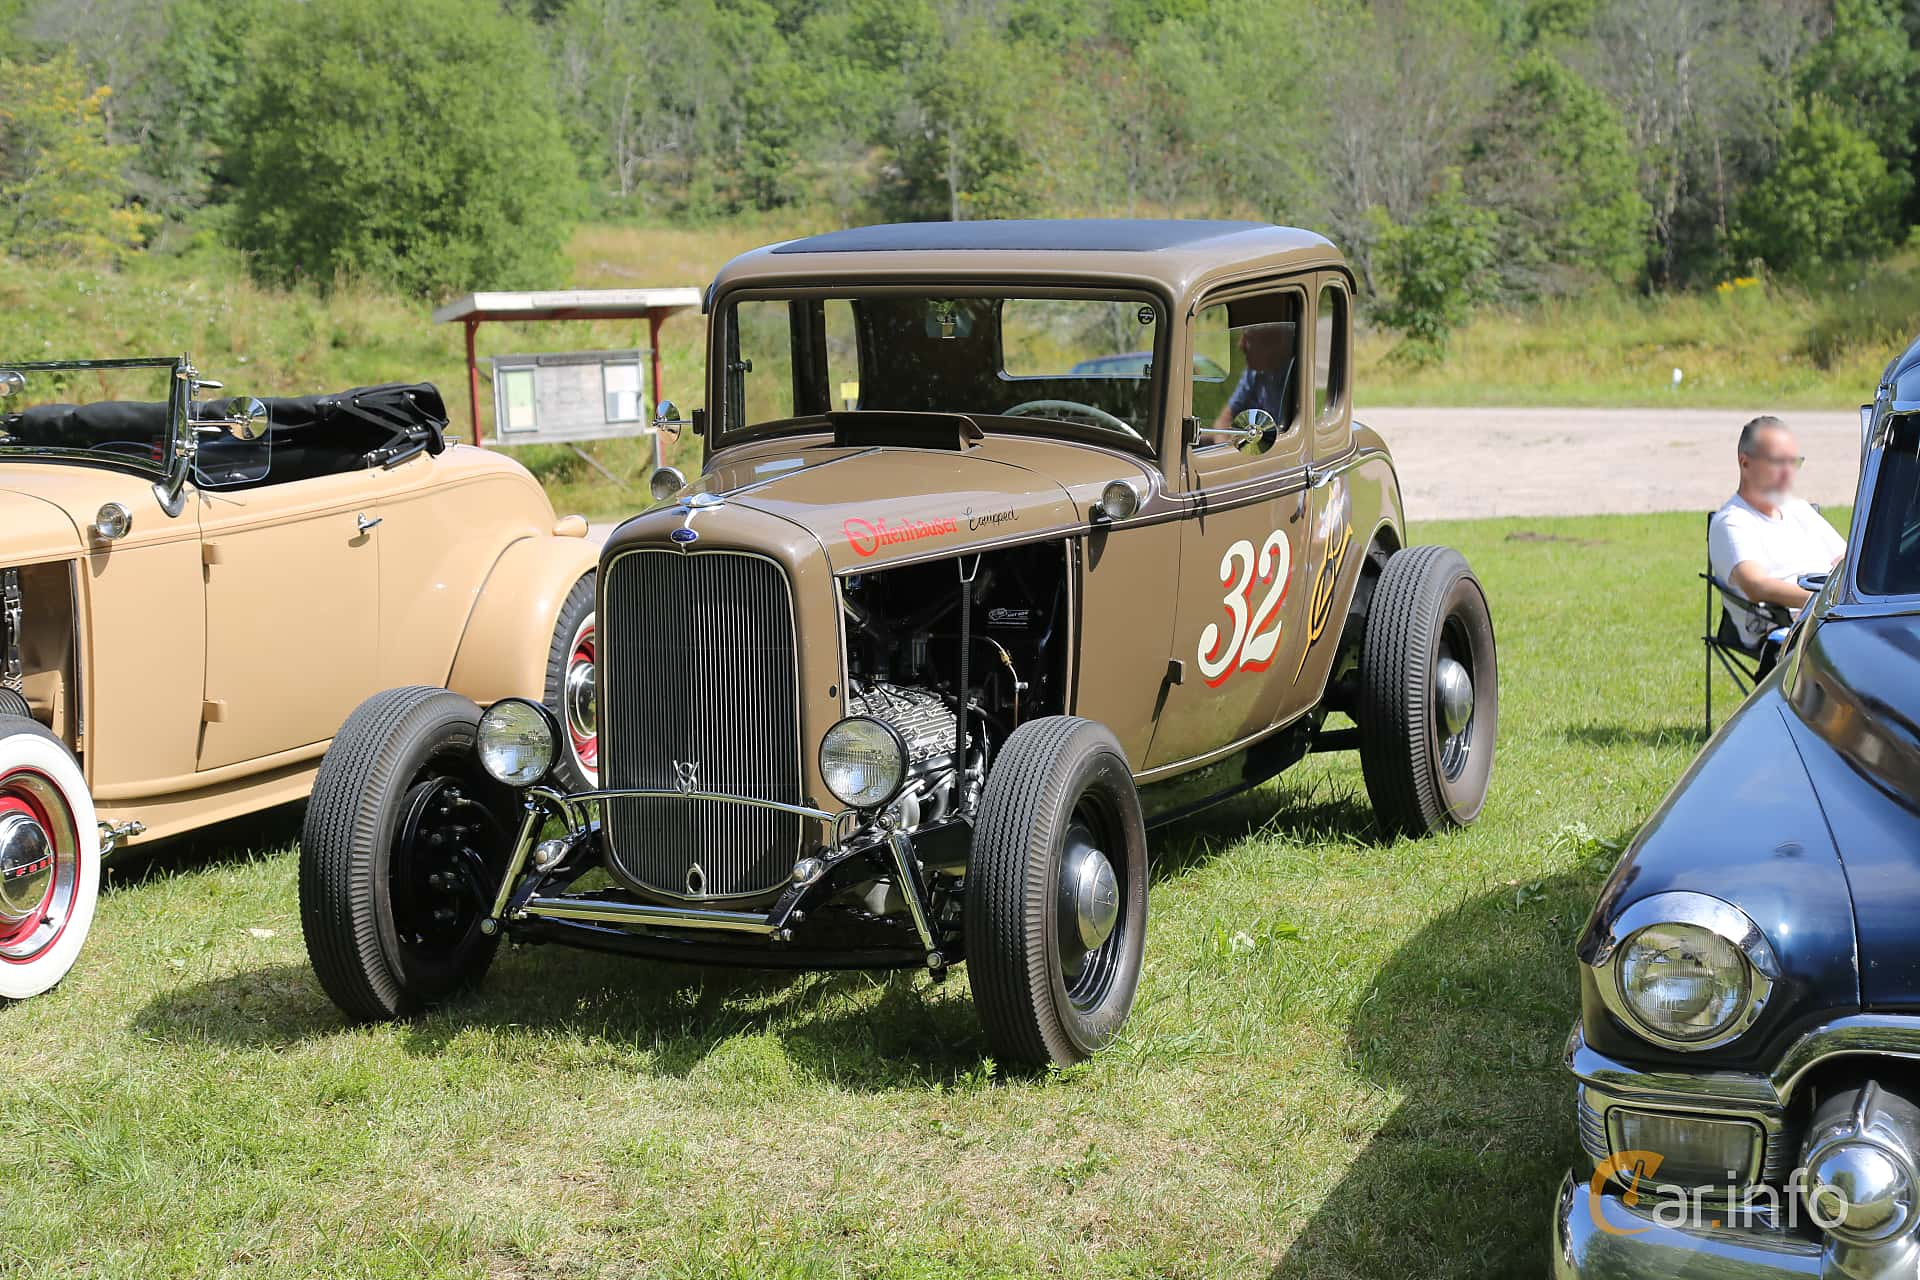 Ford Model B Sport Coupé 3.3 Manual, 51hp, 1932 at A-bombers - Old Style Weekend Backamo 2019